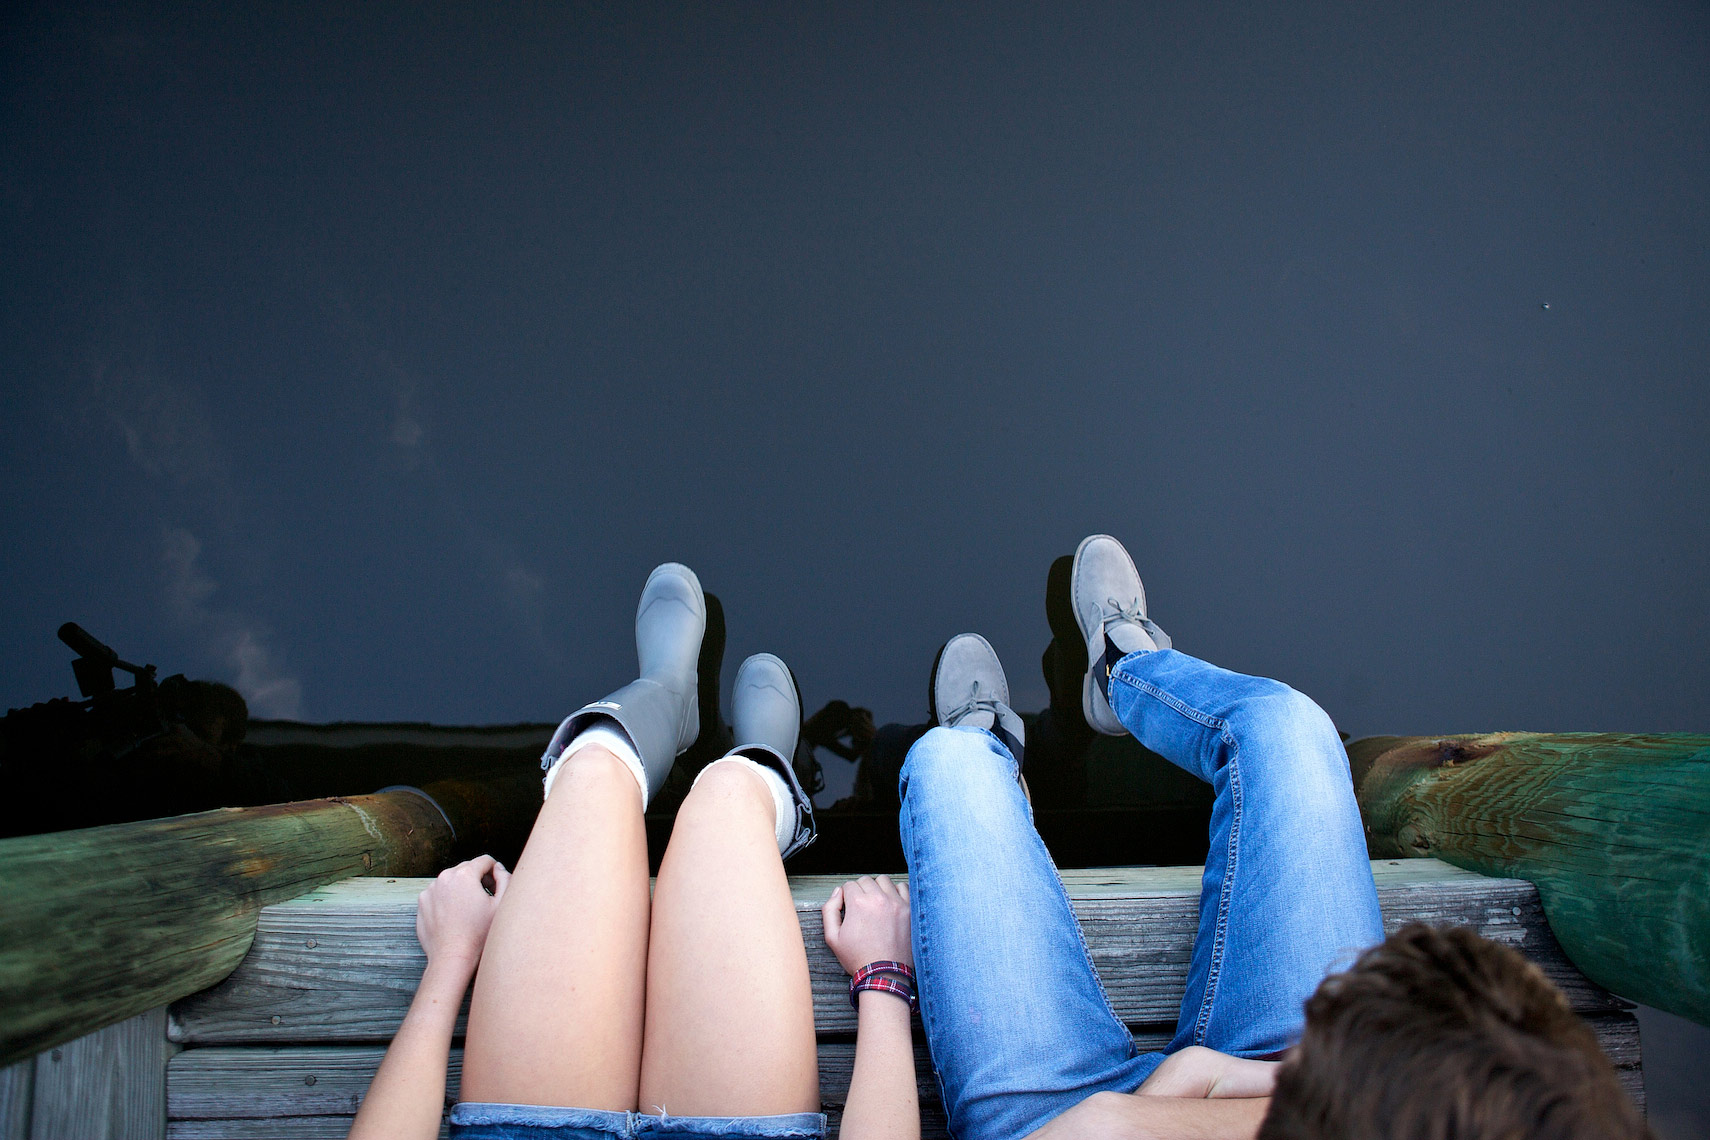 teenagers legs dangle from dock_Robert-Holland.jpg